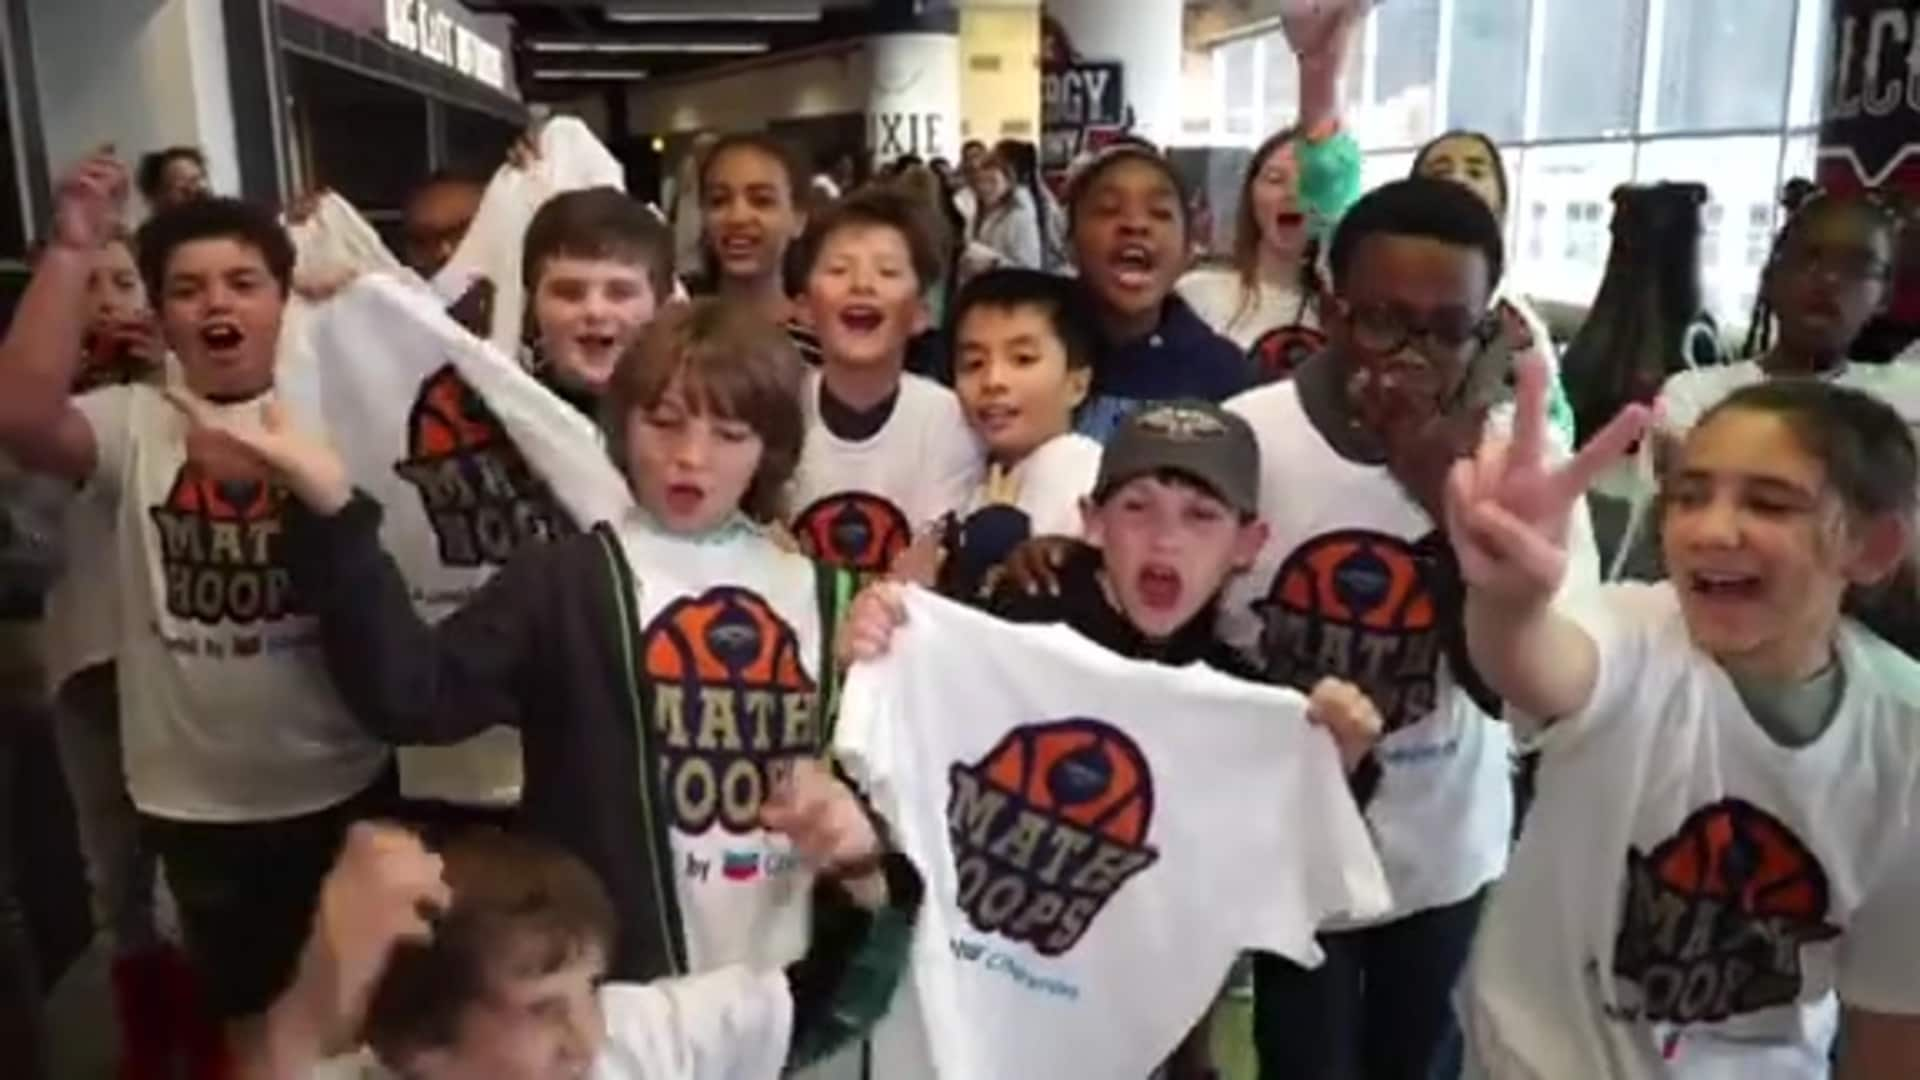 Pelicans-Chevron host Math Hoops Night at Smoothie King Center